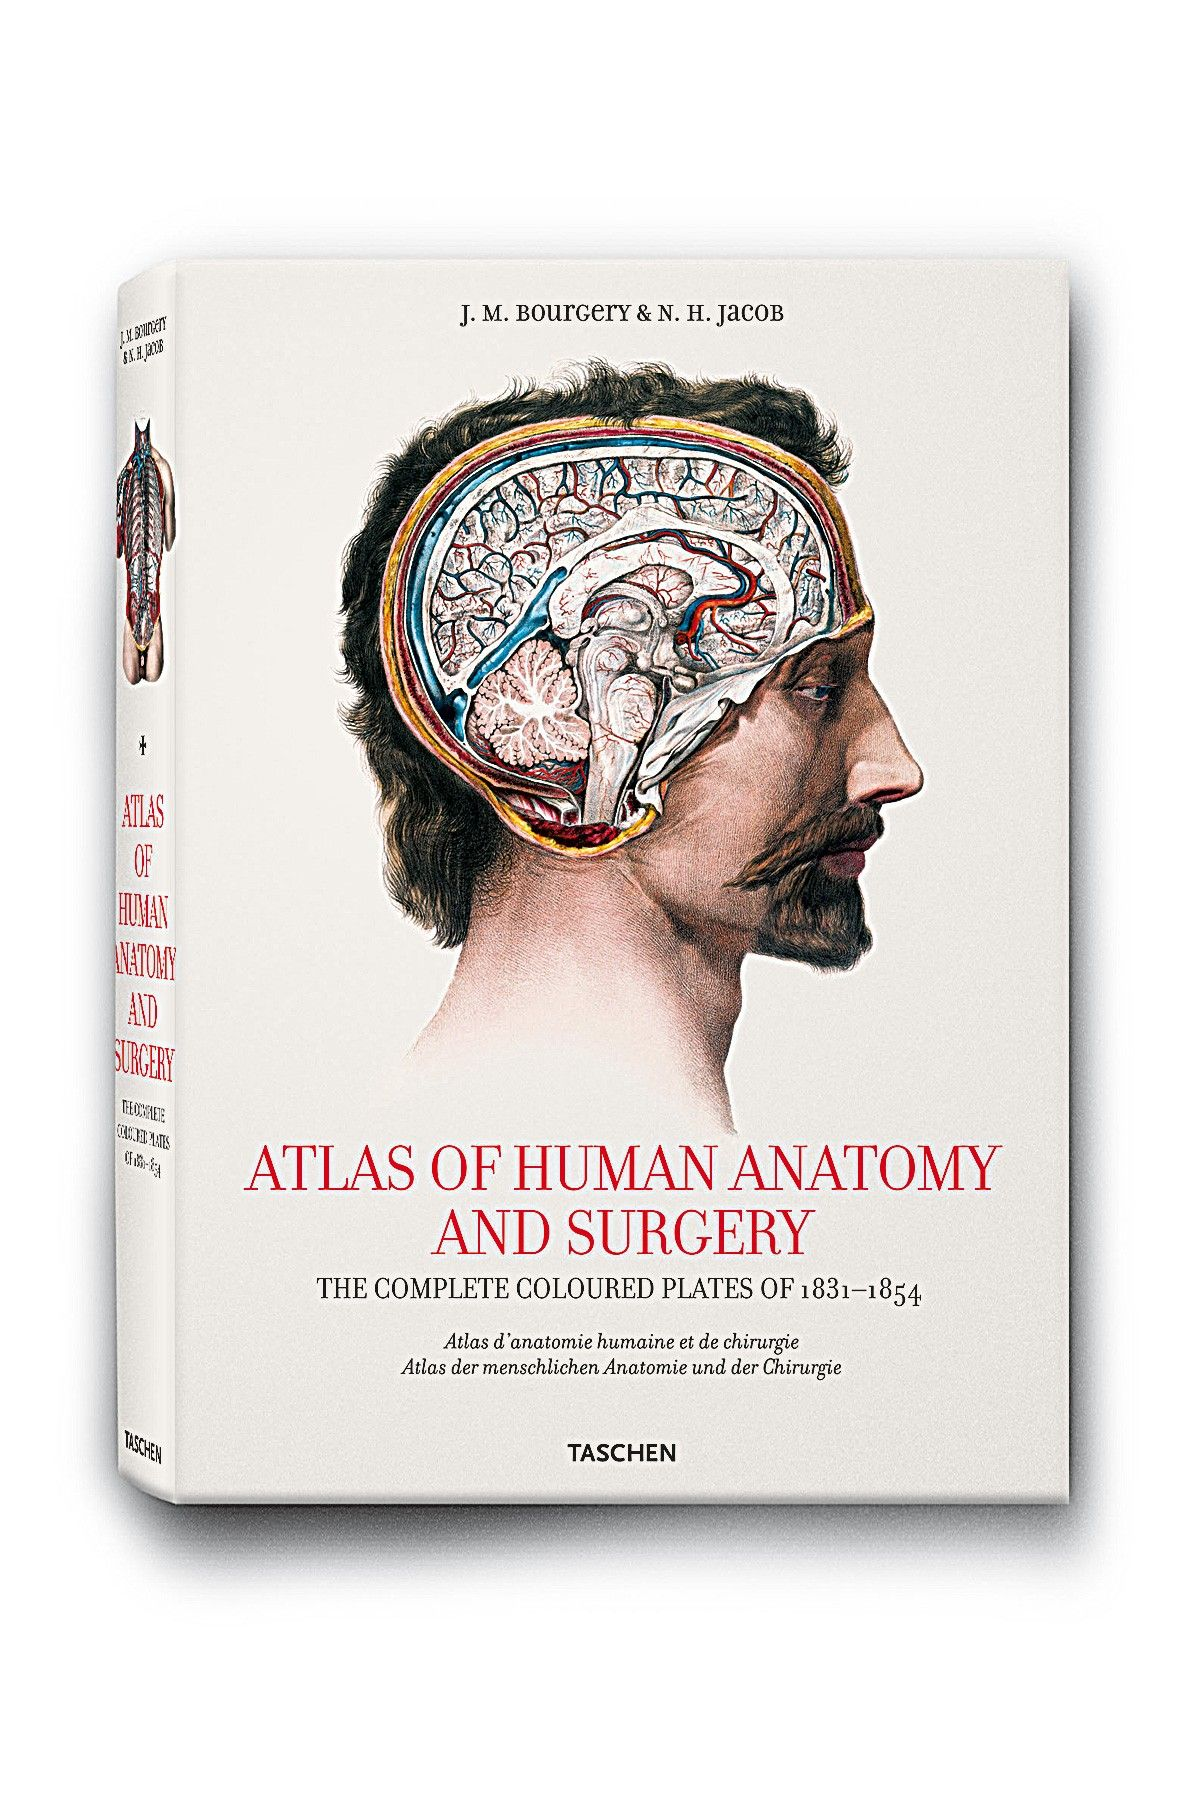 Pin by MediaMed on Old Medical Library | Pinterest | Anatomy and ...